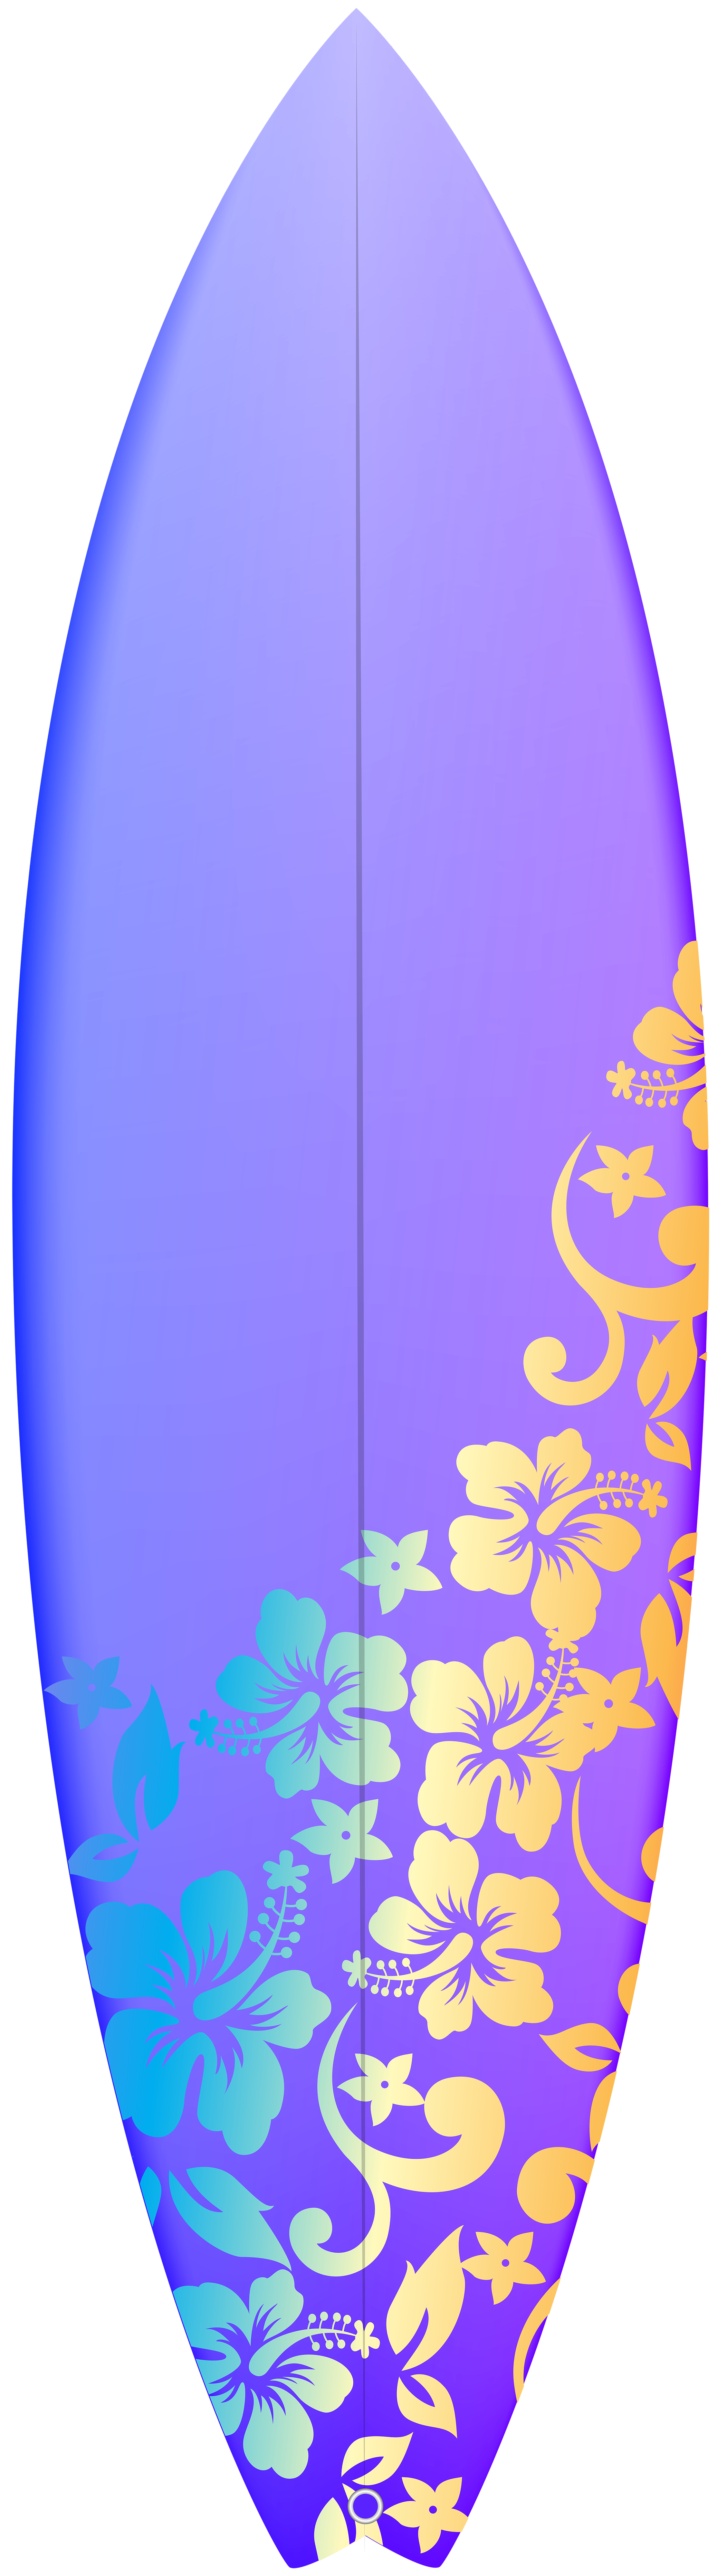 Surfboard transparent background clipart graphic library library Surfboard Transparent PNG Clip Art Image   Gallery Yopriceville ... graphic library library